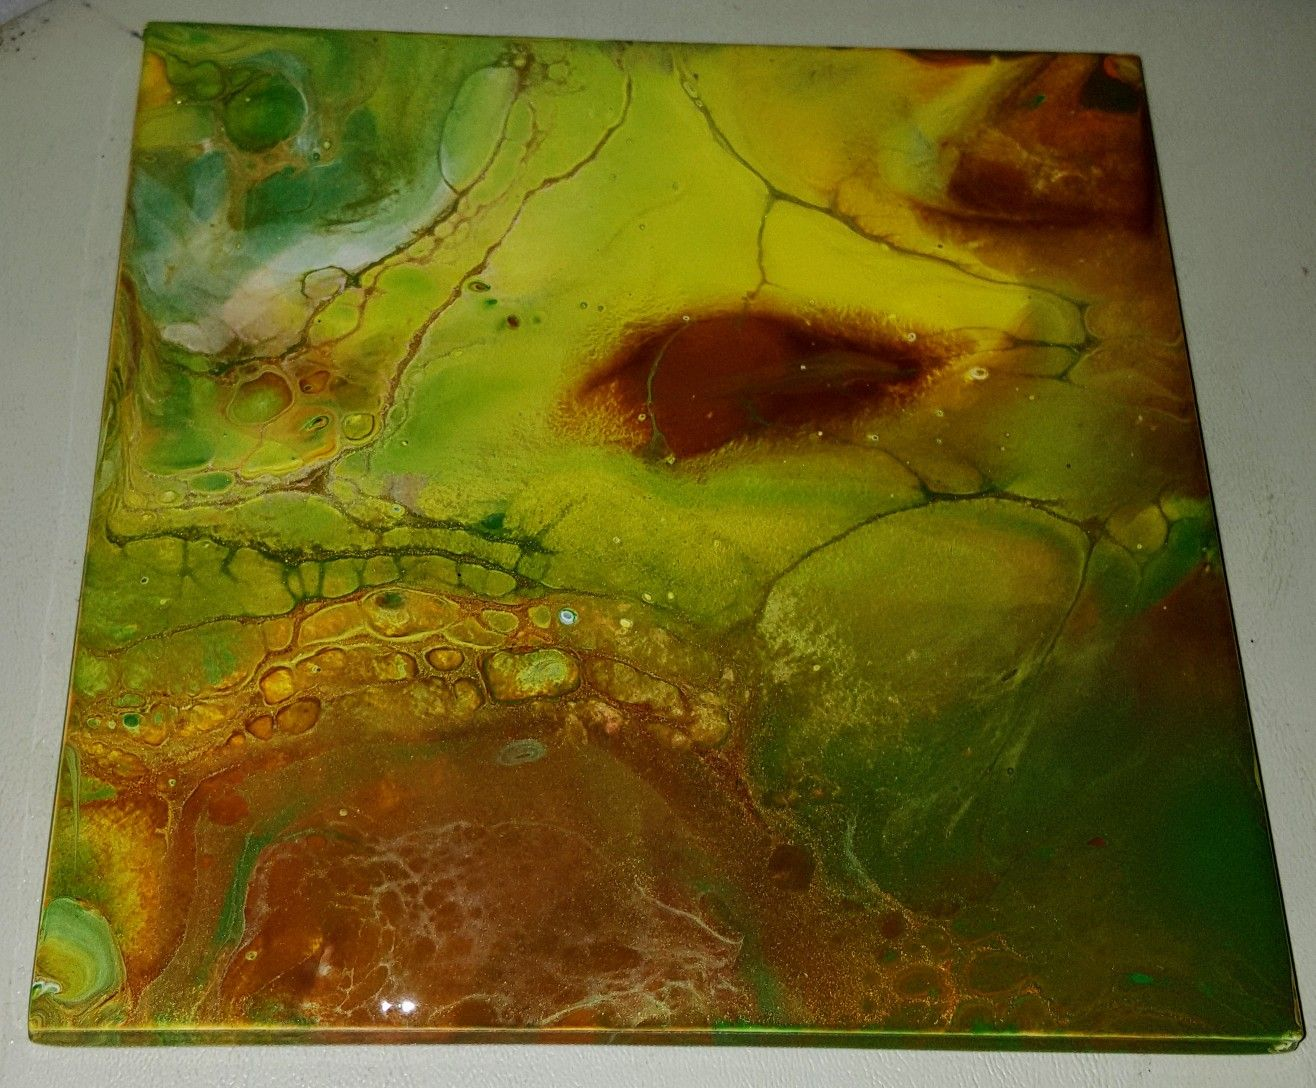 6x6 Acrylic Pour Painting With Fda Clear Coat Trivet Or Serving